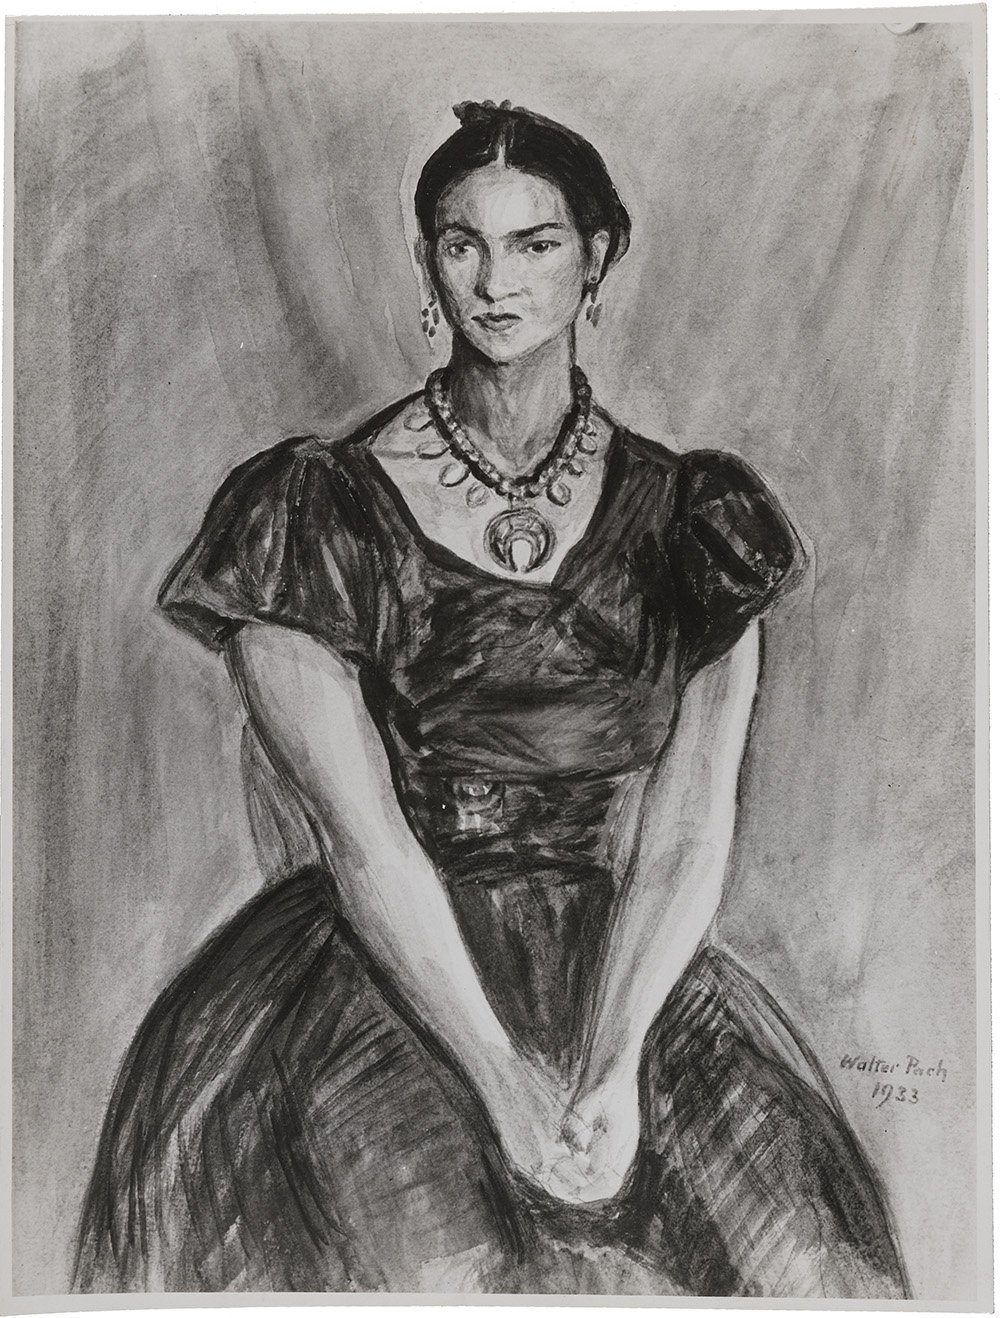 Black and white photograph of an early portrait of Frida Kahlo by Walter Pach